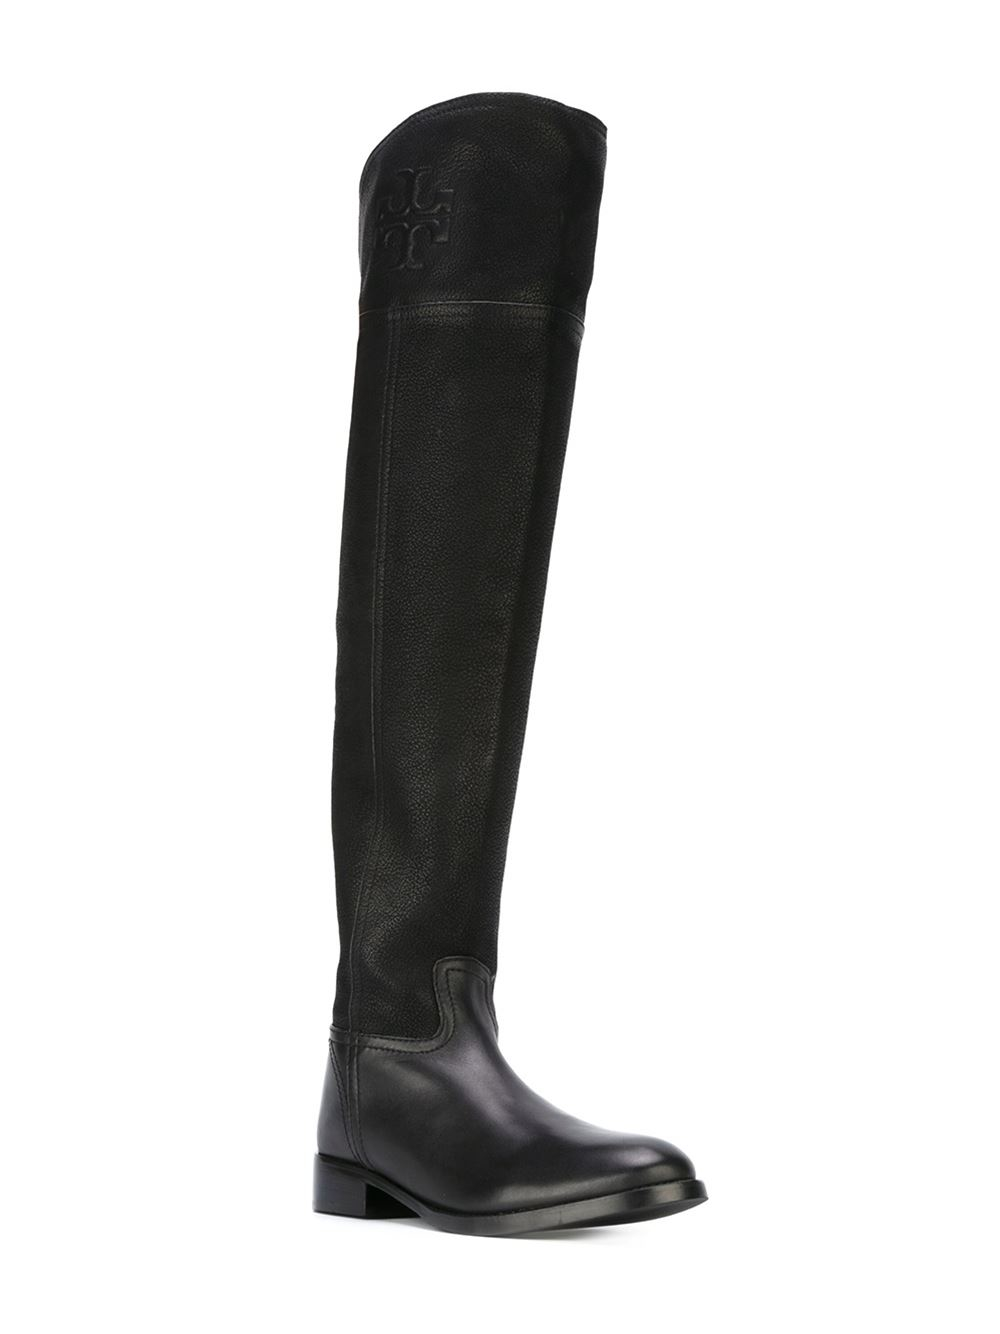 8167cc522d4e65 Lyst - Tory Burch Embossed Logo Knee-high Boots in Black